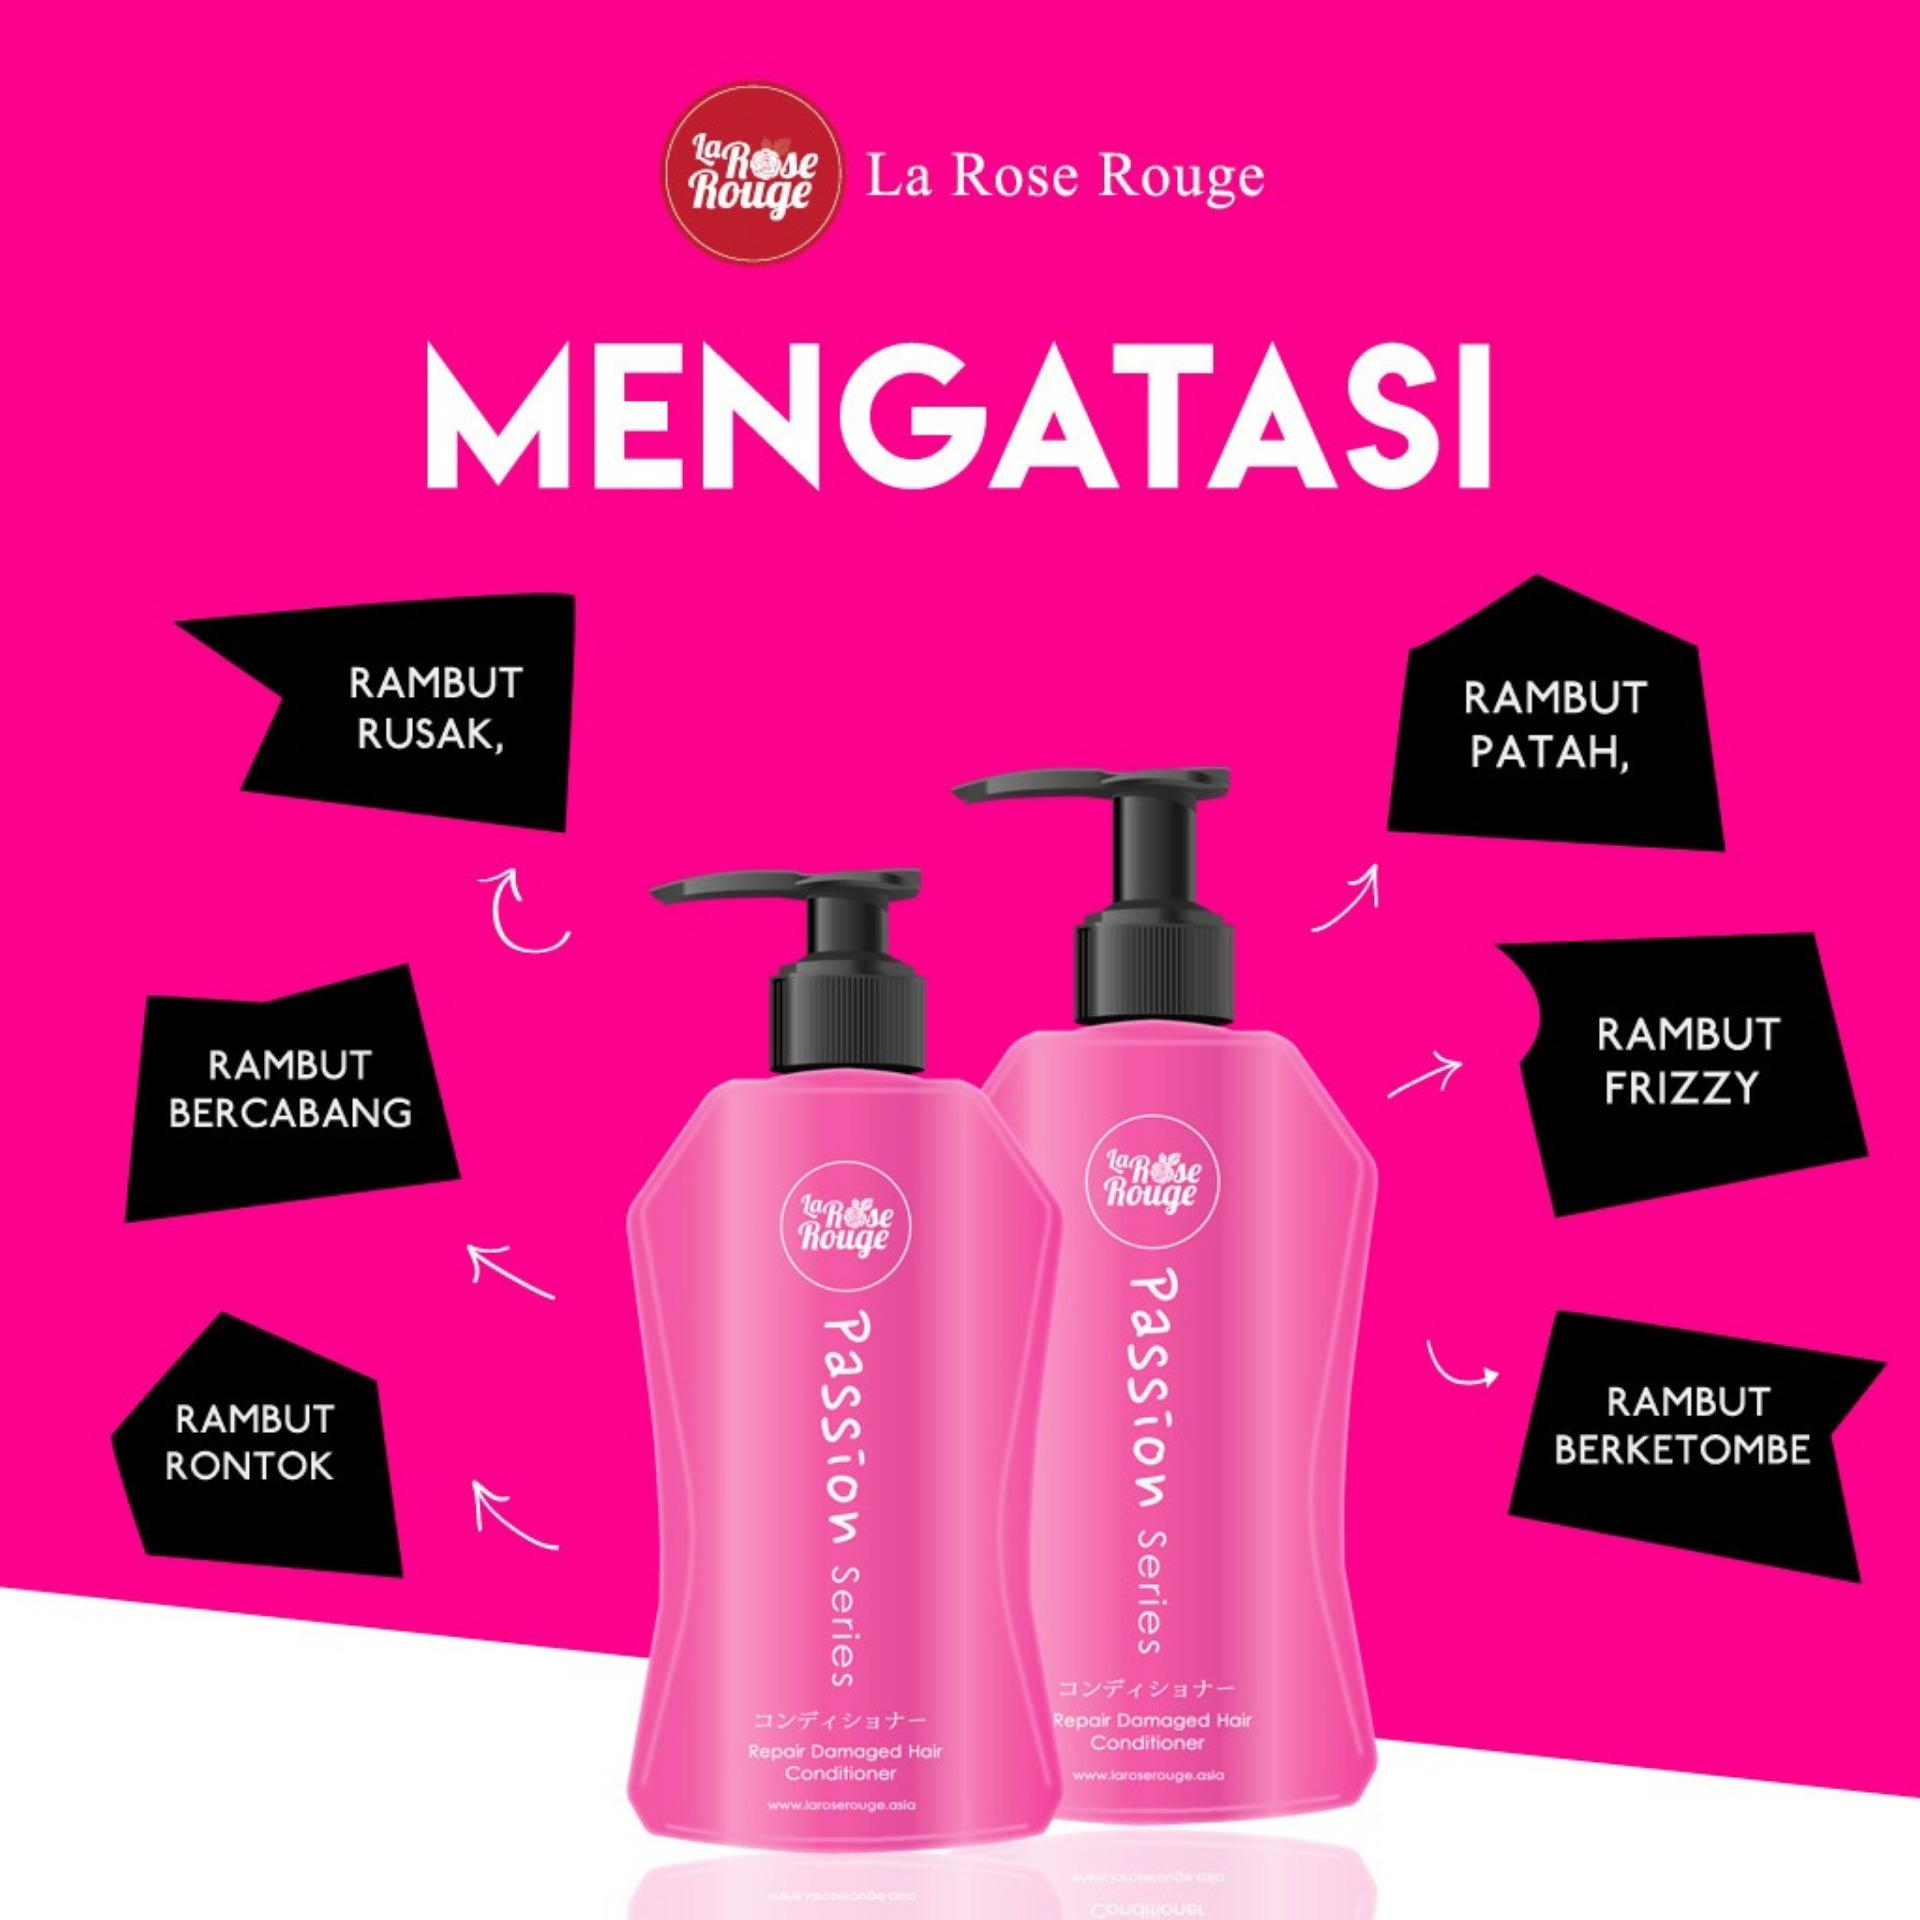 Toko Indonesia Best Buy Perawatan Rambut Akar 04 11 18 Bio Herbal Shampoo Ginseng Shampo Bpom La Rose Rouge Paket 1 Set Dan Conditioner Original Seller Frizzy Hair Rusak Japan And